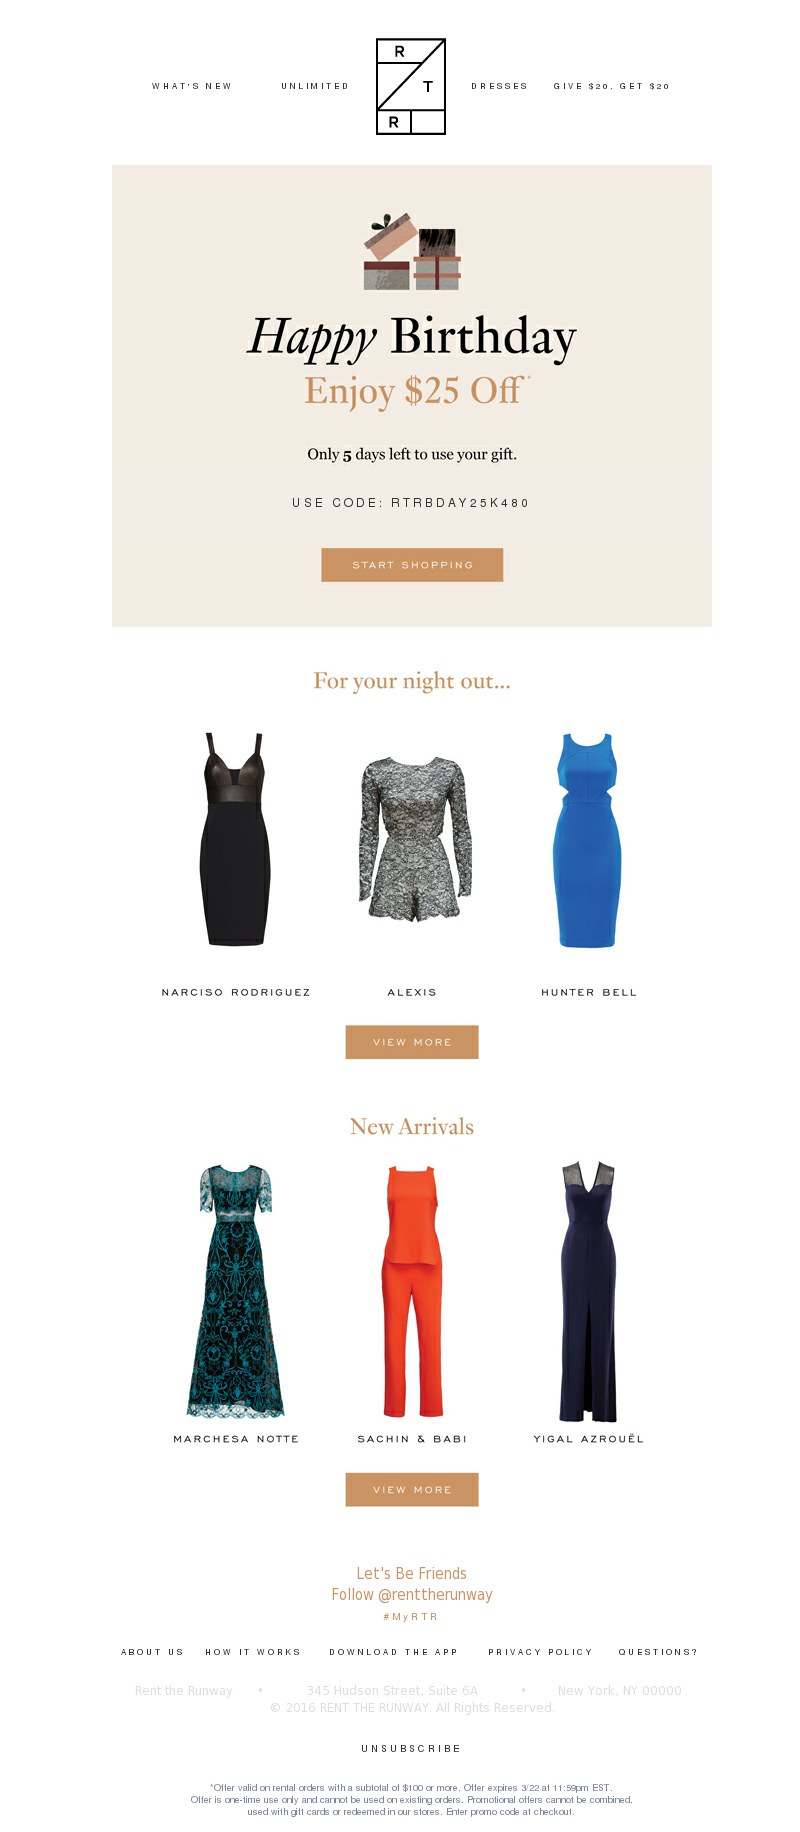 Rent the Runway - LAST CALL: Use Your Birthday Gift Today